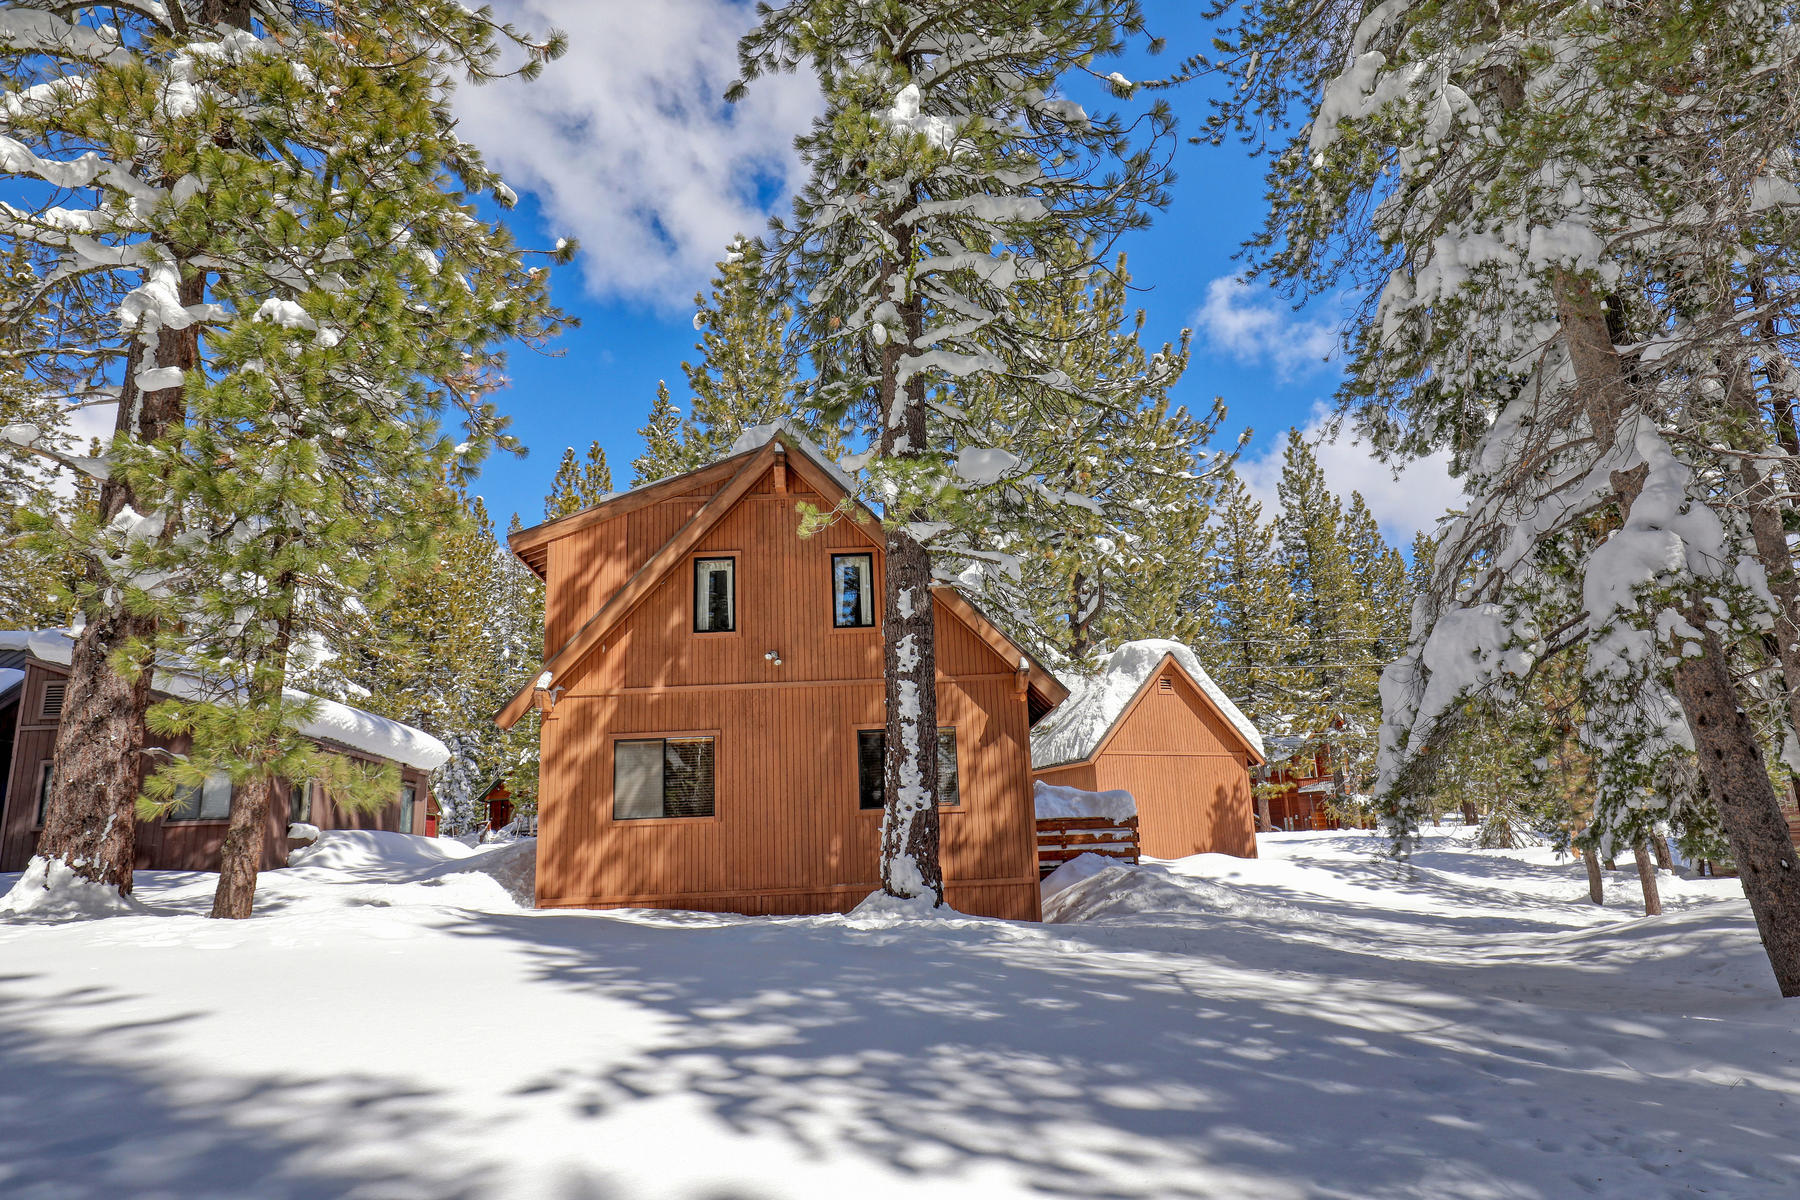 Additional photo for property listing at Cozy Ski cabin near Rec Center 11894 Oslo Drive Truckee, California 96161 Estados Unidos